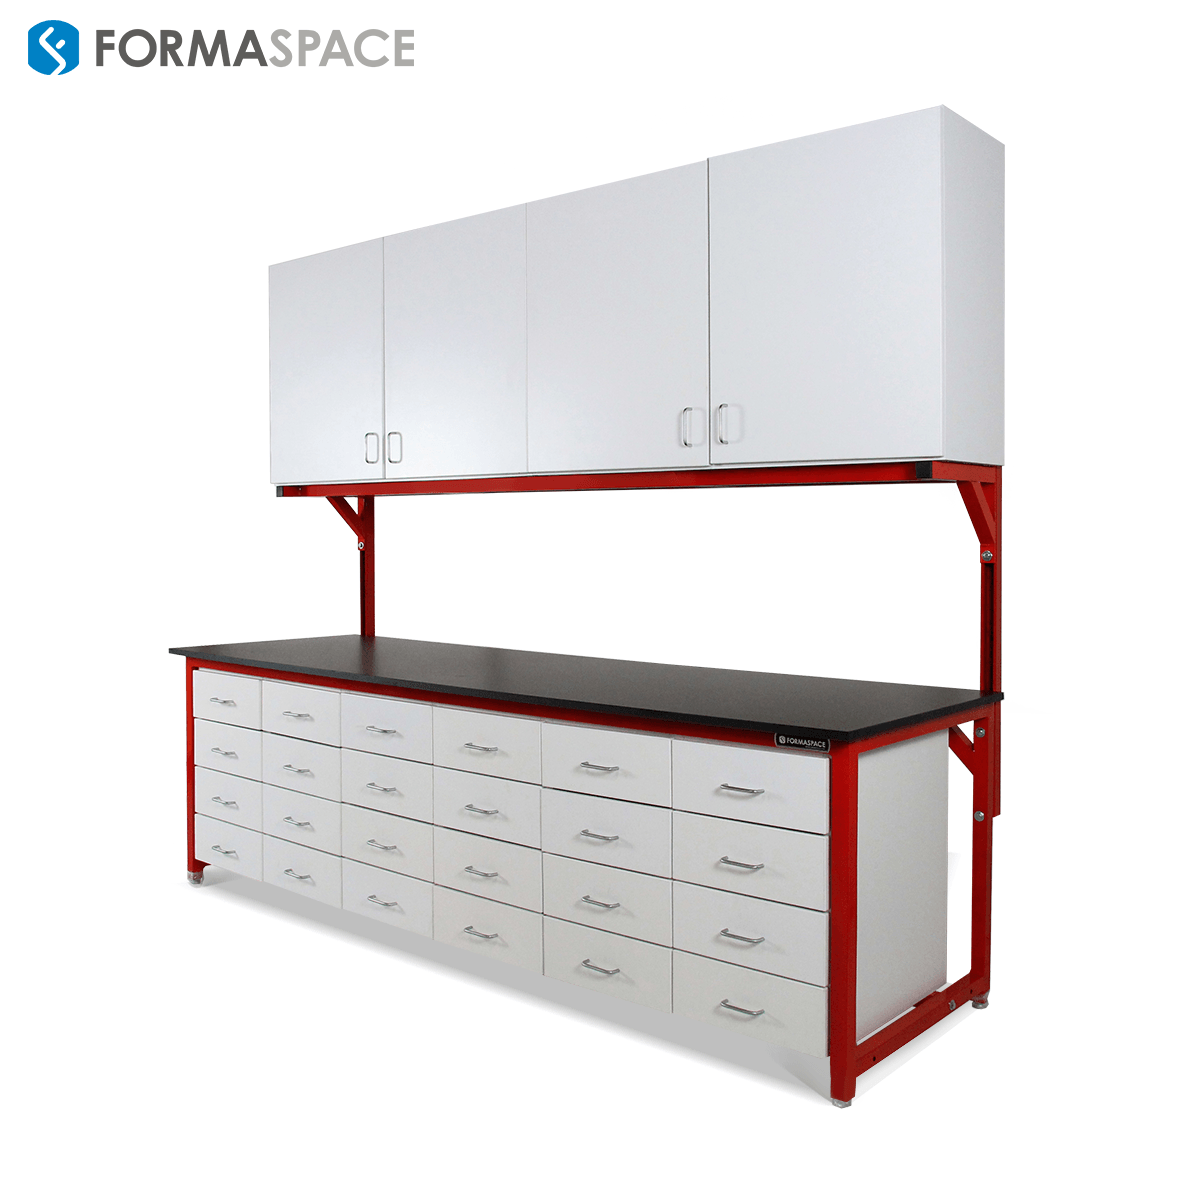 storage workbench with red frame